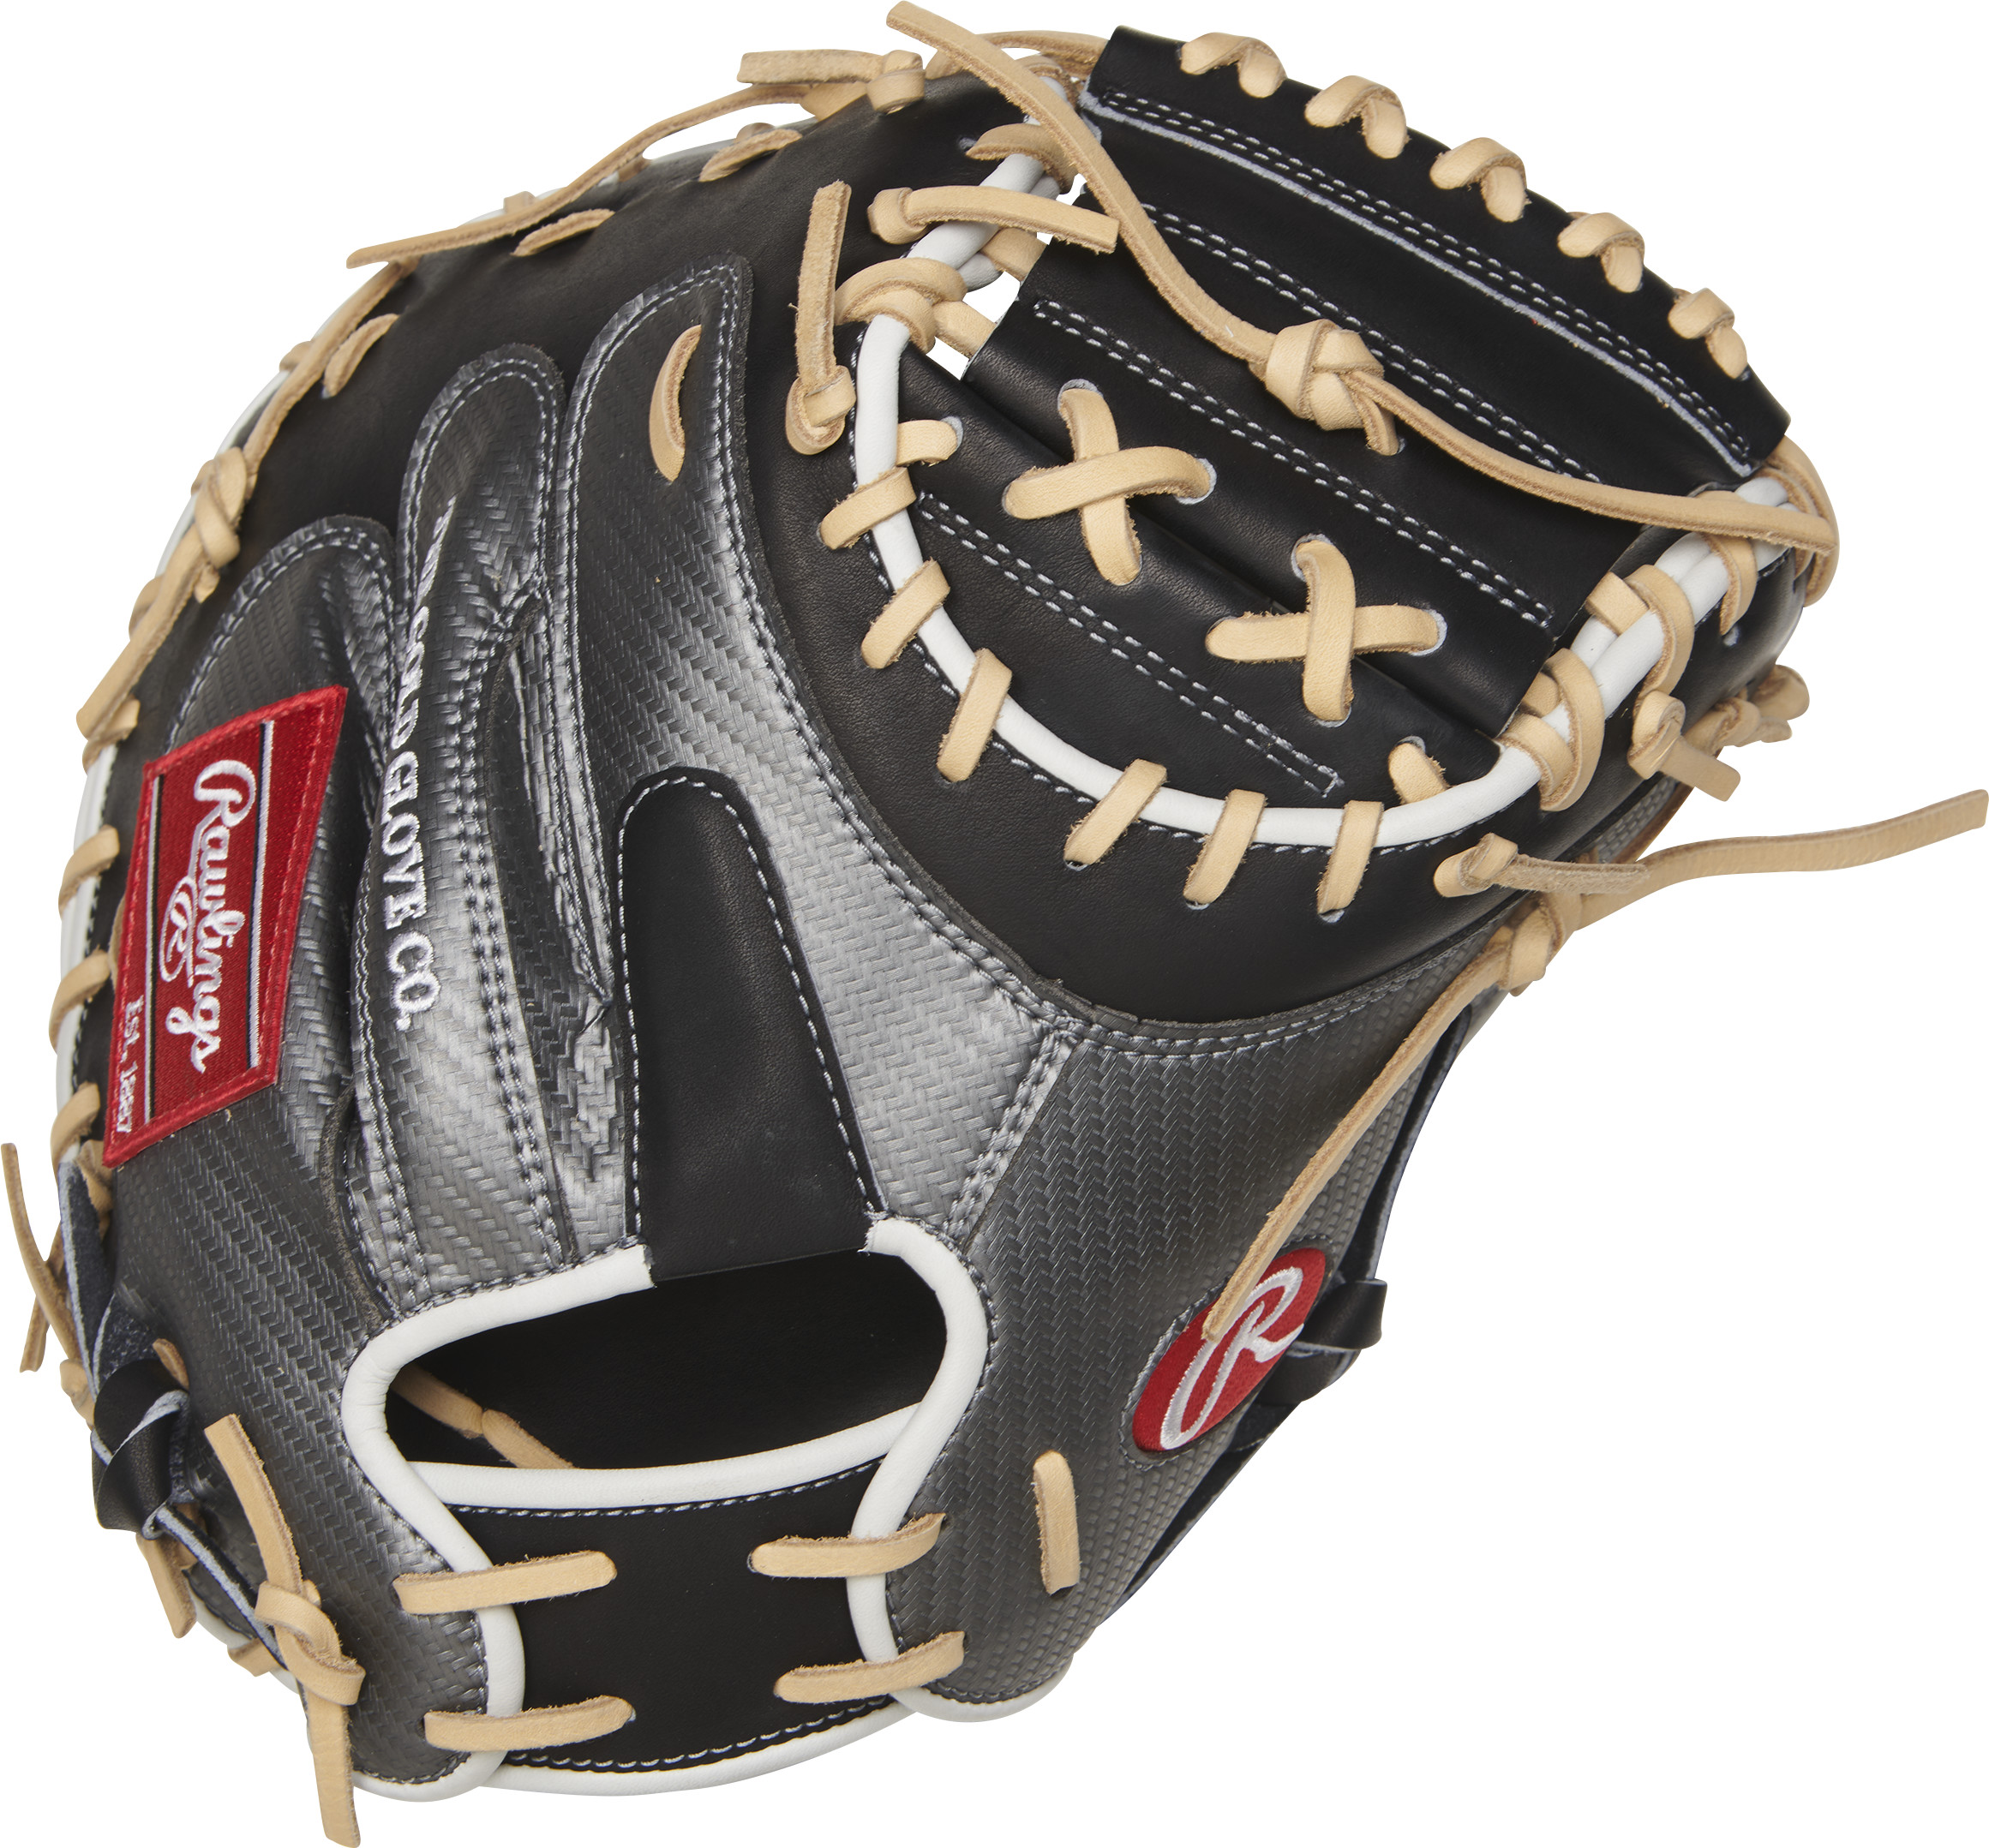 http://www.bestbatdeals.com/images/gloves/rawlings/PROCM41BCF-2.jpg